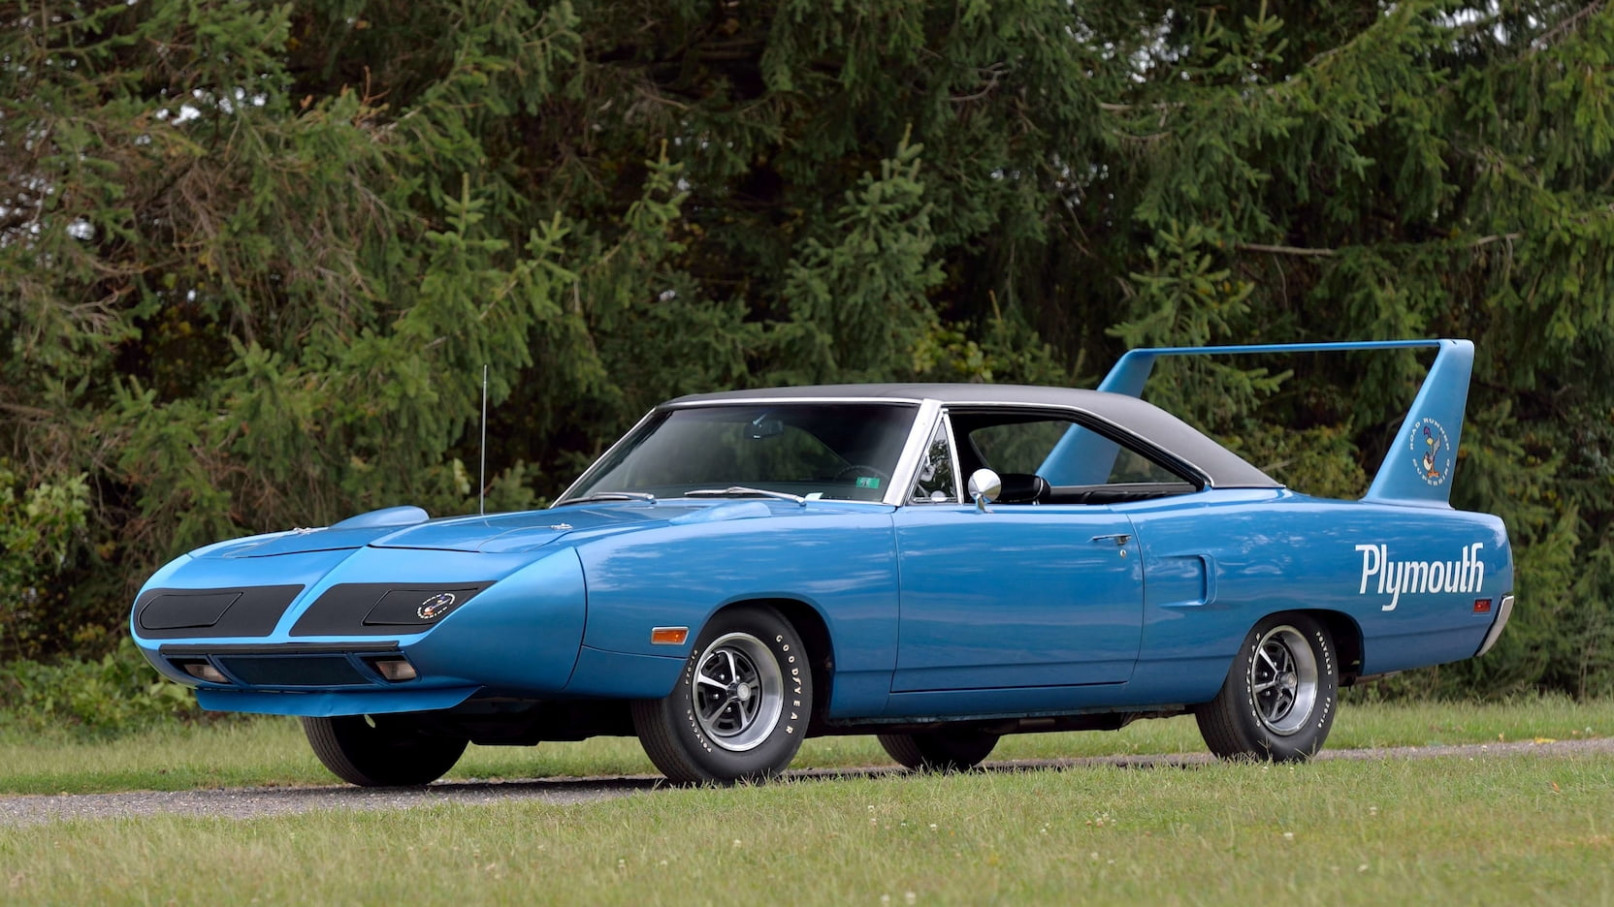 5 Plymouth Superbird | S5 | Kissimmee 5 | 2020 Chrysler Superbird